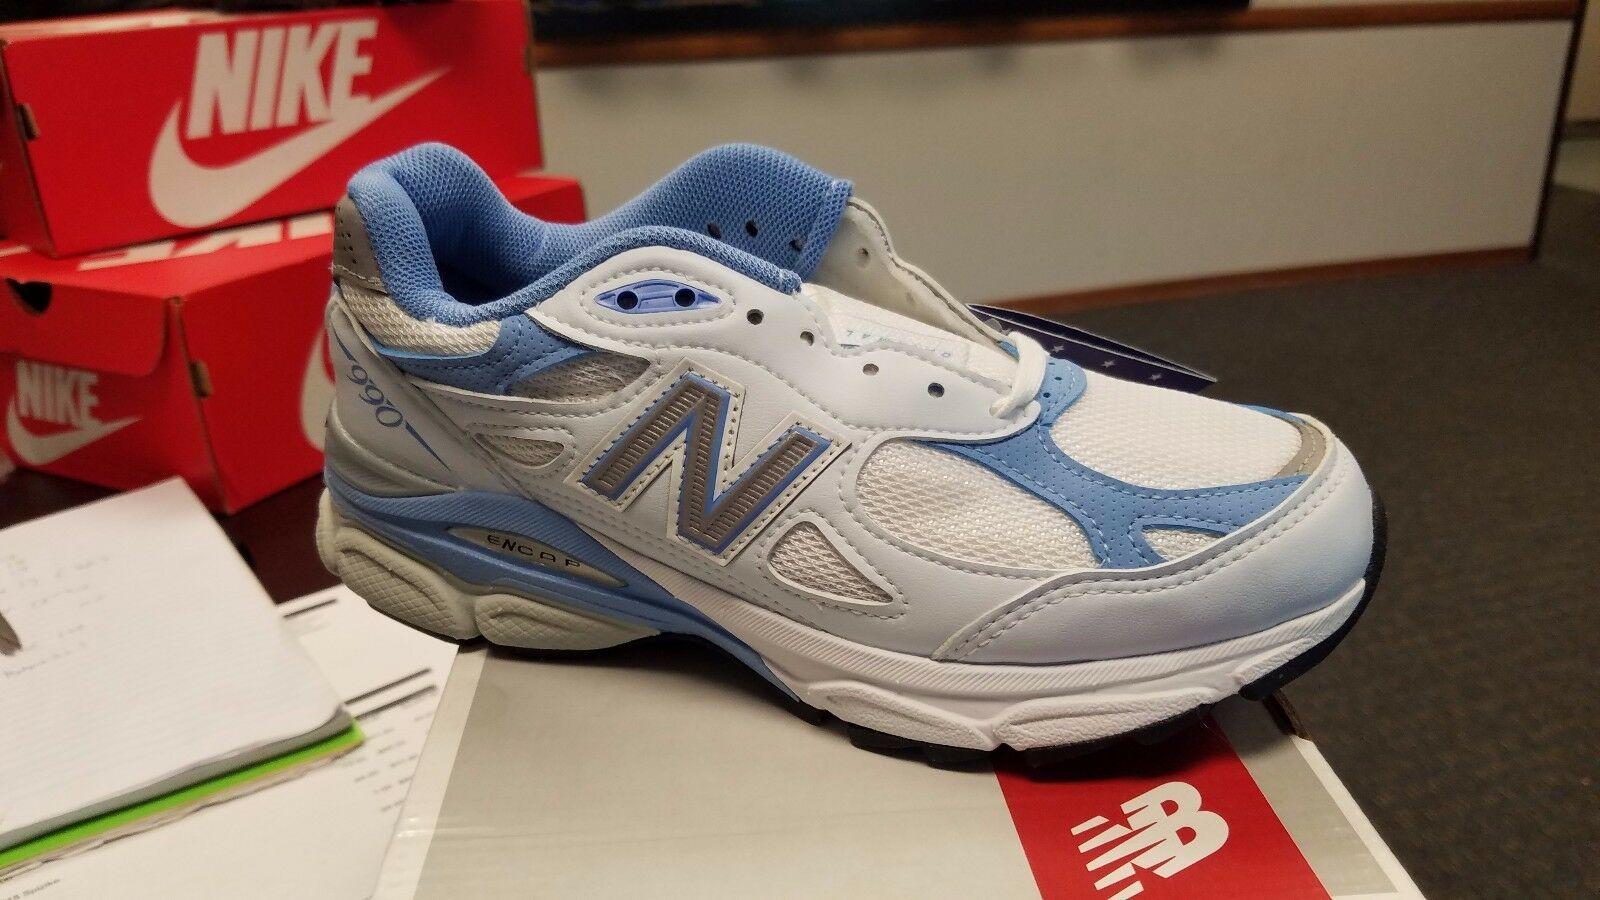 NEW WOMEN NEW BALANCE NB W990WB3 RUNNING RUNNING RUNNING SHOES MADE IN USA NEW IN BOX 09c1b1